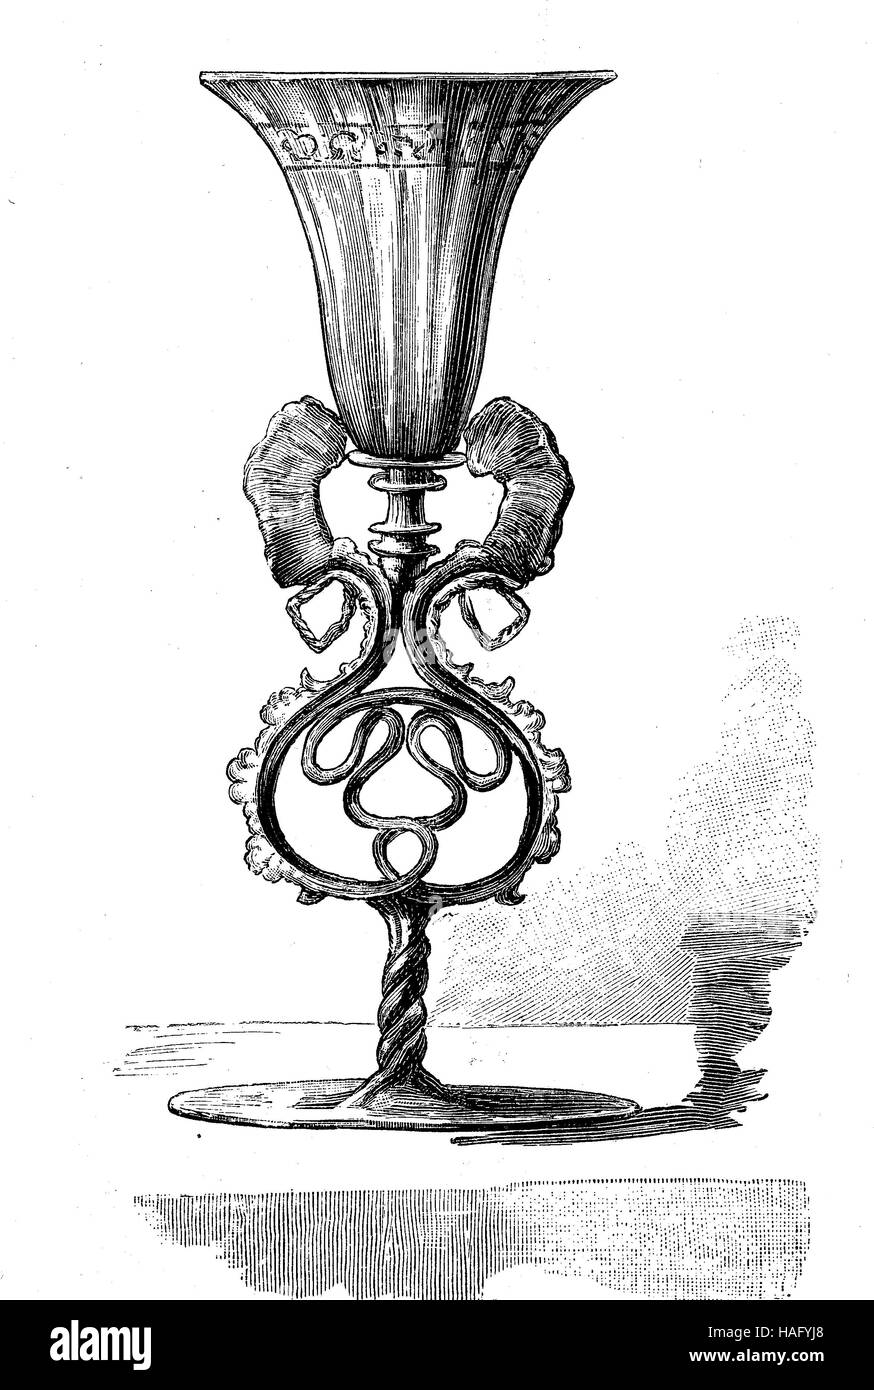 Drinkware, a cup made of venetian glass, Venice, Italy, 16. century, woodcut from the year 1880 - Stock Image